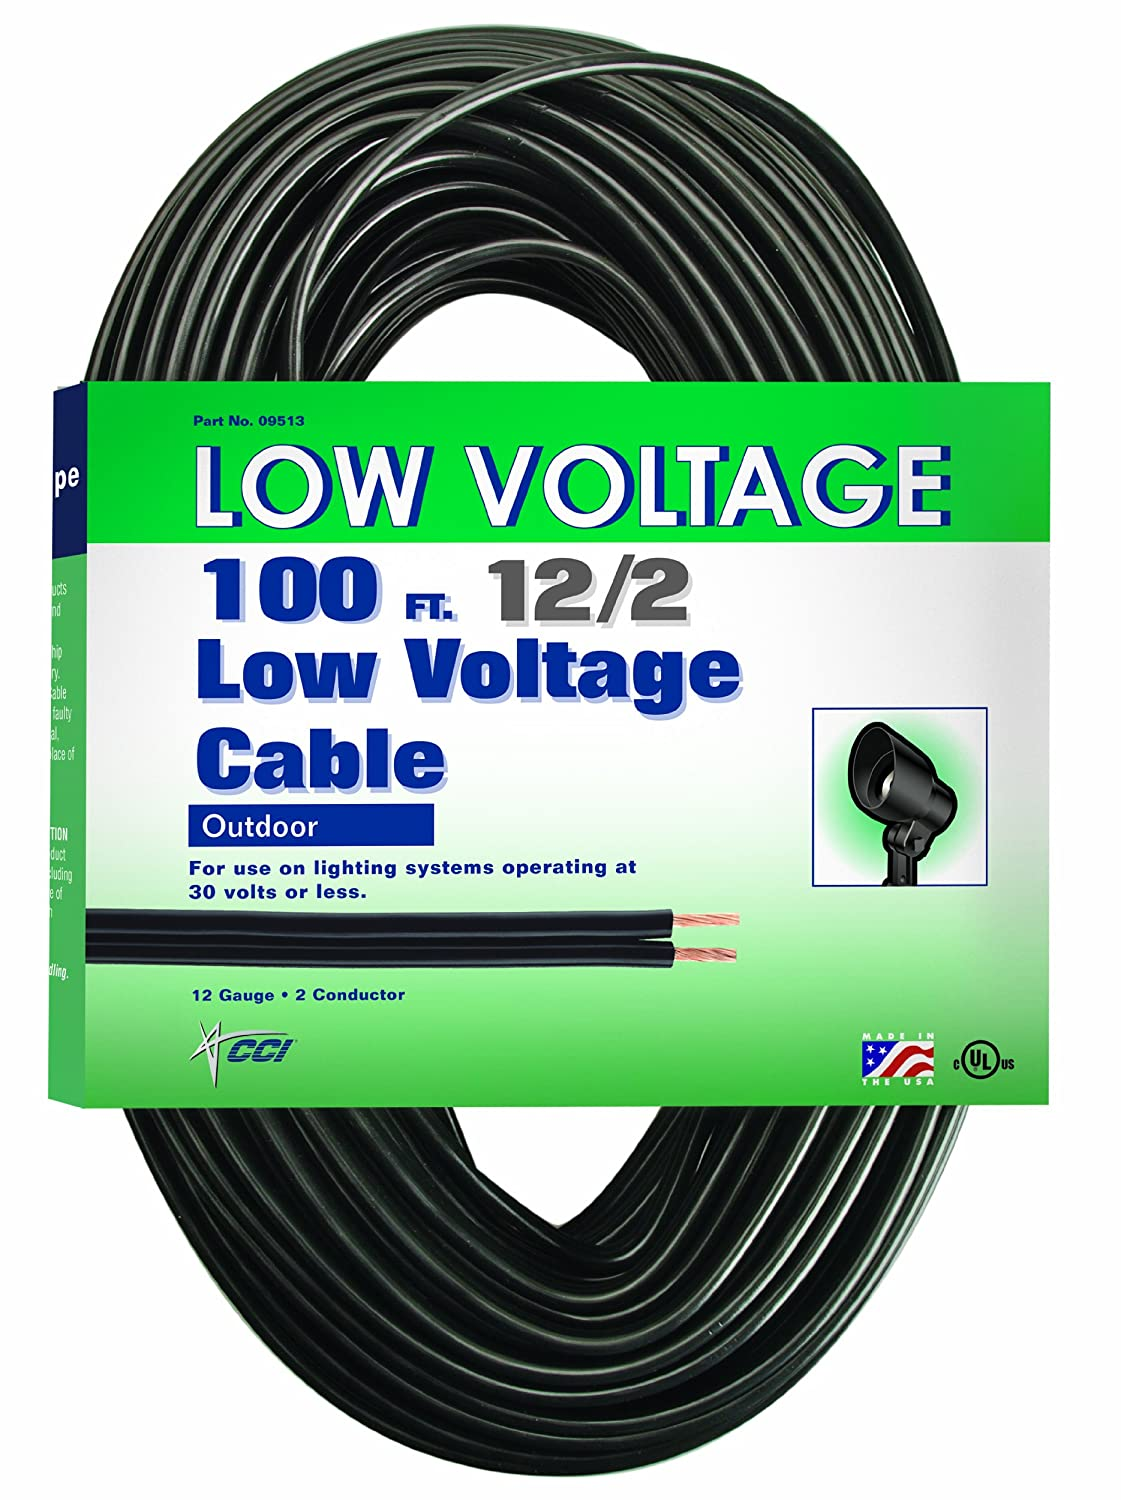 Coleman Cable Low Voltage Outdoor Lighting Cable (100 Ft, 12/2 gauge,  Black) - Led Household Light Bulbs - Amazon.com